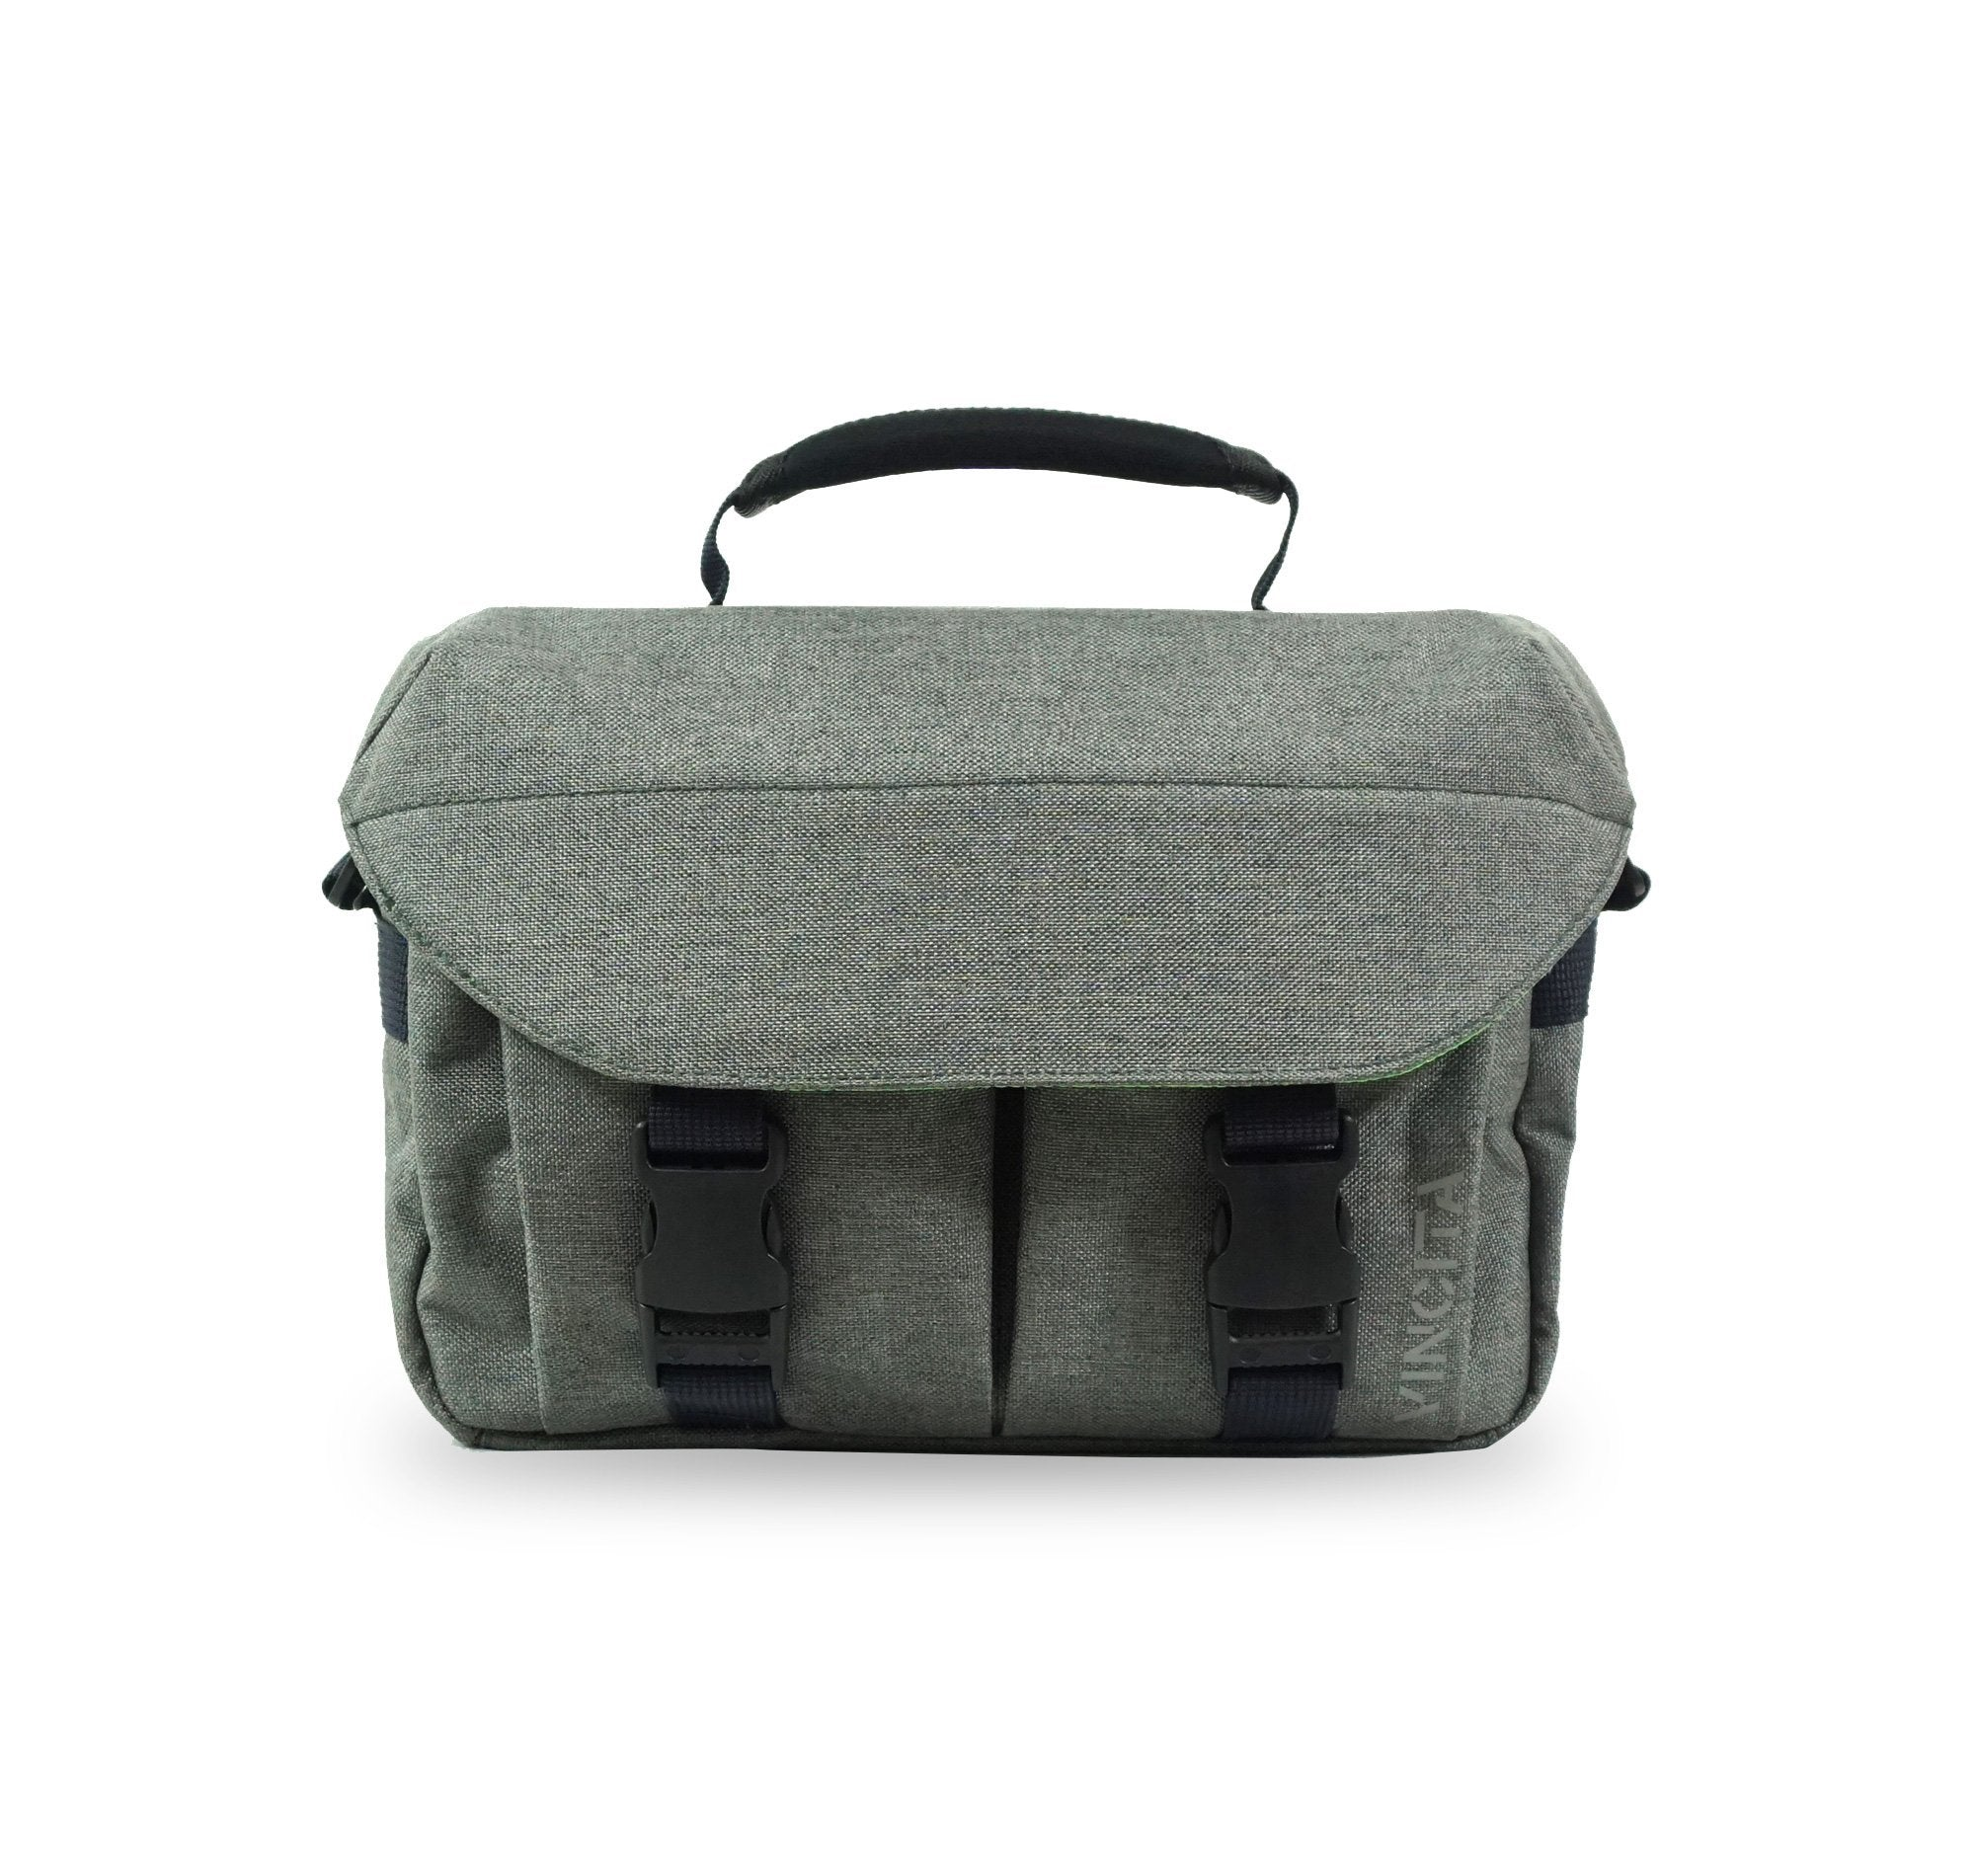 Vincita Co., Ltd. bicycle bag Gray / th B018D LUCAS BROMPTON/DAHON FRONT BAG